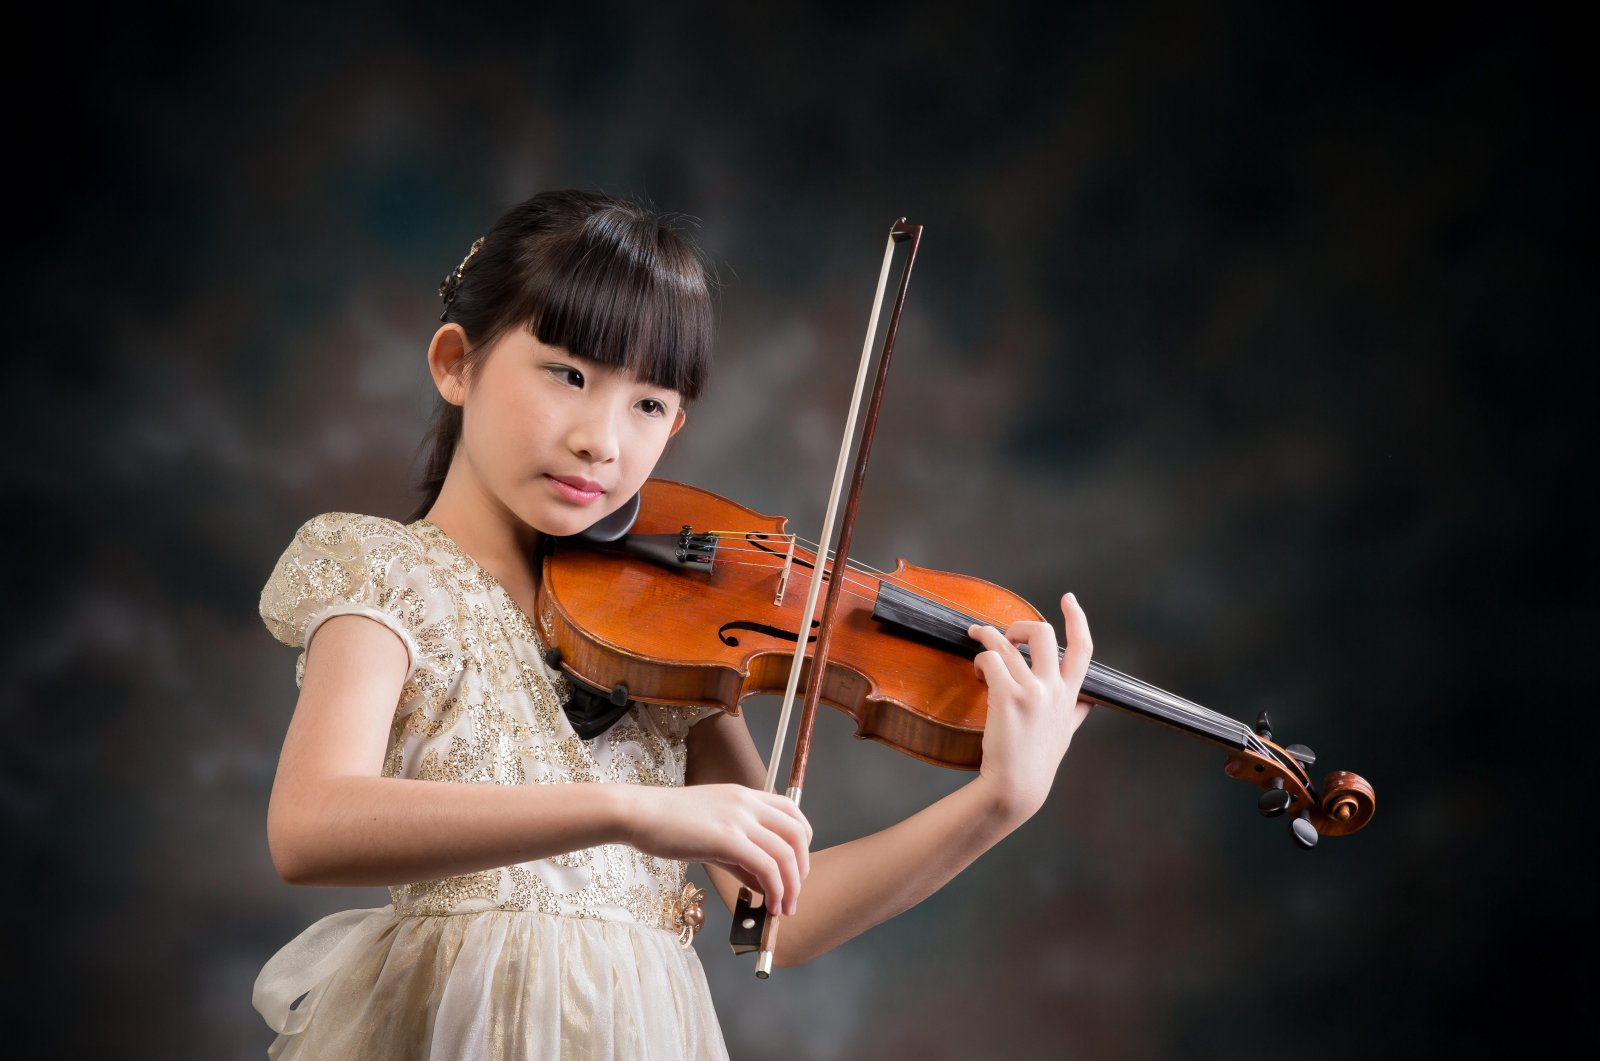 Singapore's musical prodigy Chloe Chua has been educated at NAFA School of Young Talents since she was 4 years old. (Courtesy of Singapore Embassy)